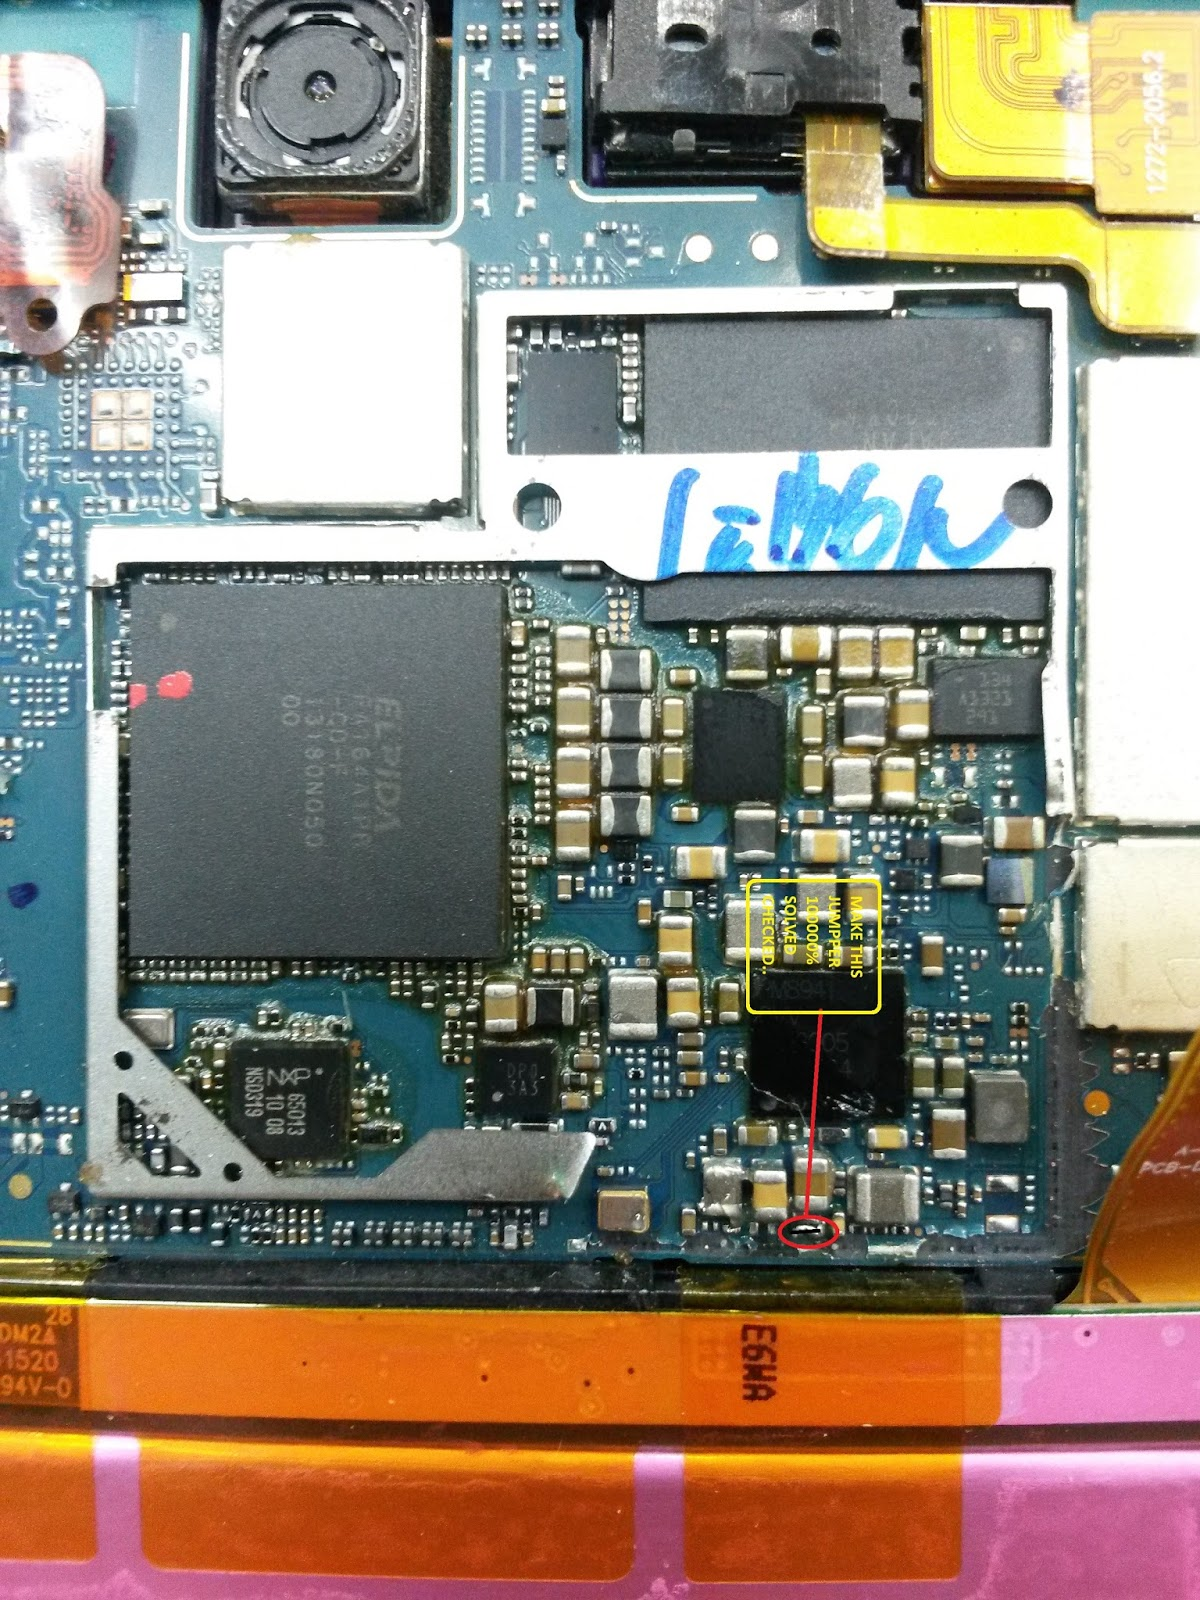 Repair Hints for Nokia Sony Xperia Z Ultra LCD play problem: 1. Try replace  the LCD screen first. 2. Try to restore, flash/update the firmware.